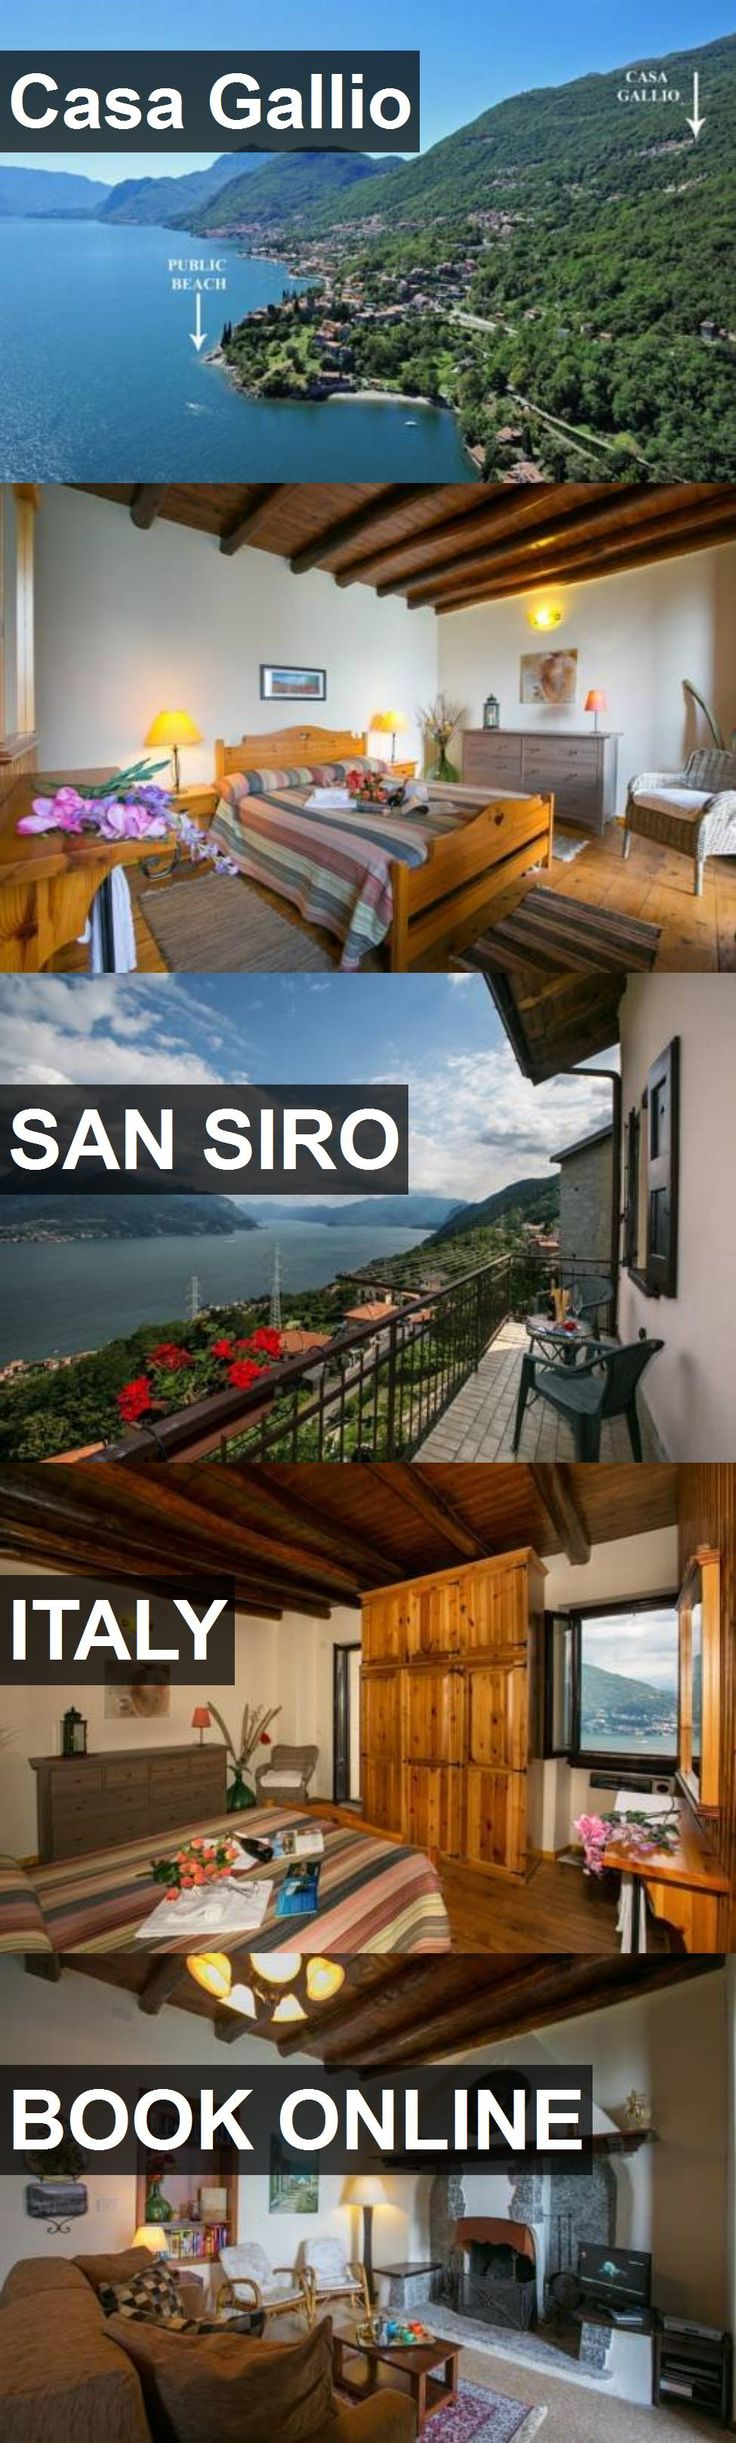 Hotel Casa Gallio in San Siro, Italy. For more information, photos, reviews and best prices please follow the link. #Italy #SanSiro #travel #vacation #hotel